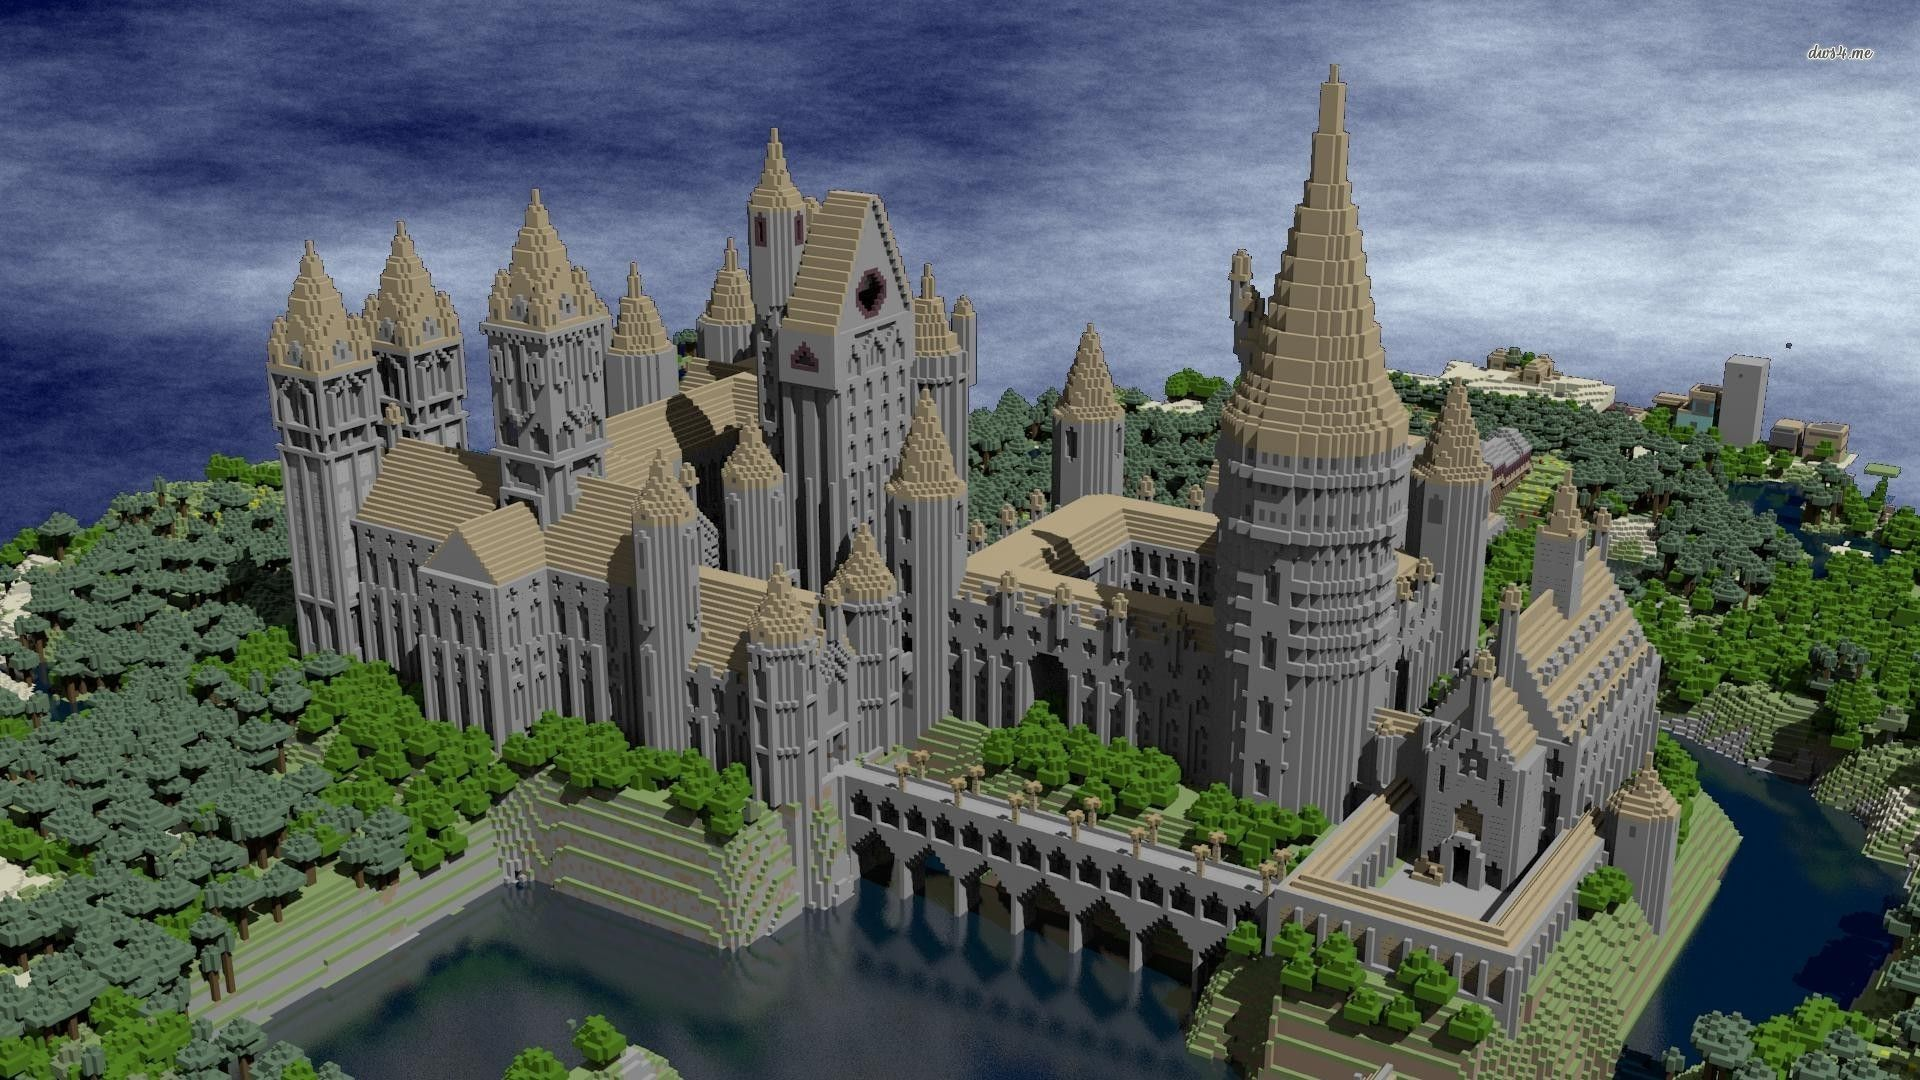 Fantastic Wallpaper Minecraft Harry Potter - 159359981a7abe4fe900730ab7ac4b08  Collection_939412.jpg